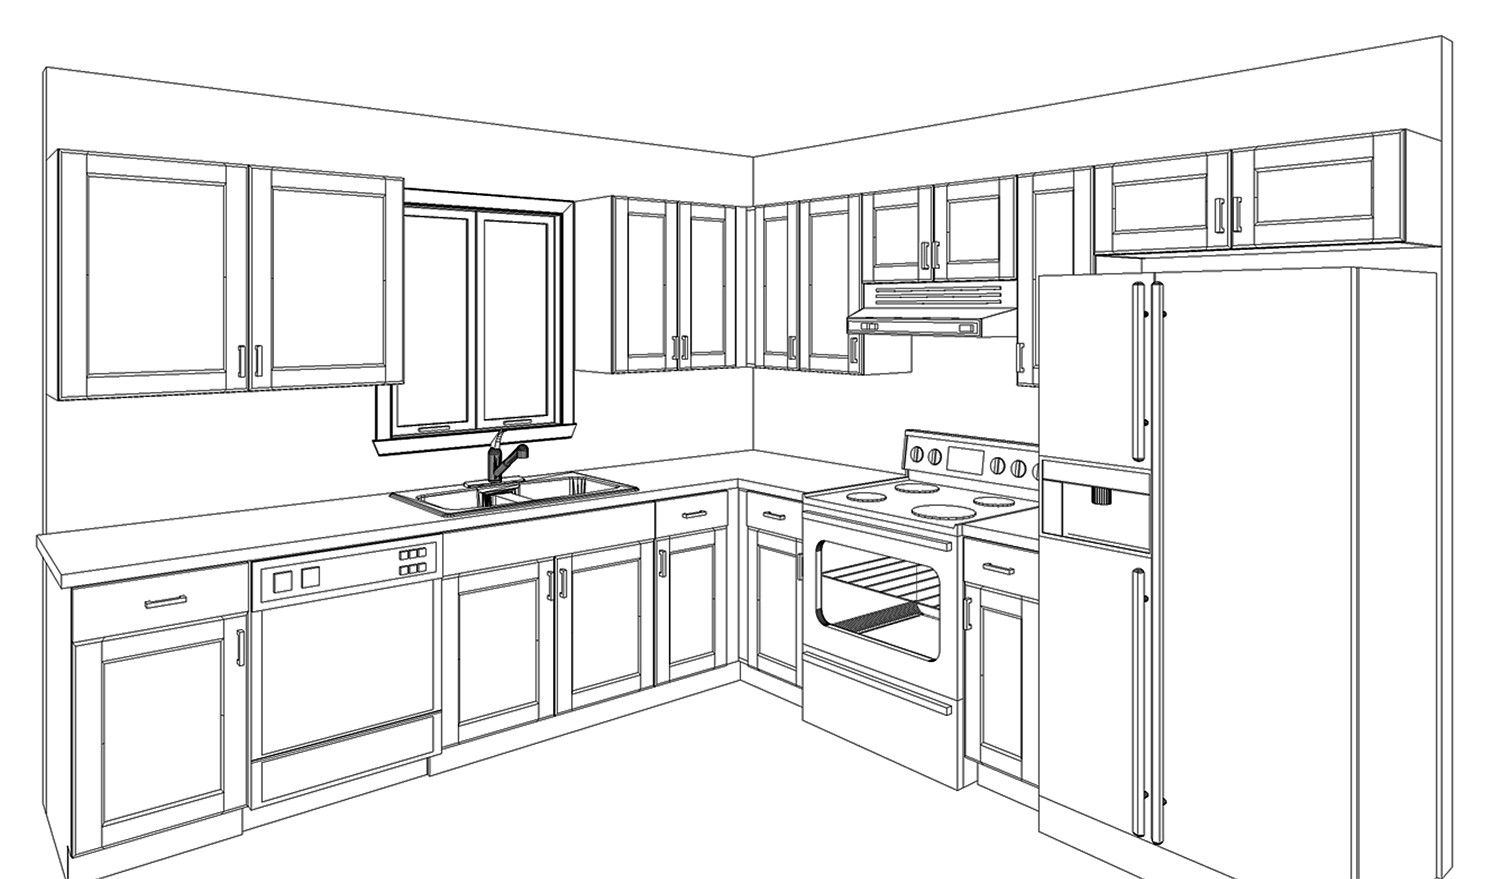 55 How To Draw Kitchen Cabinets Chalkboard Ideas For Kitchen Check More At Http Www Planetgreenspot Com 2 Kitchen Drawing Kitchen Planner Kitchen Cabinets